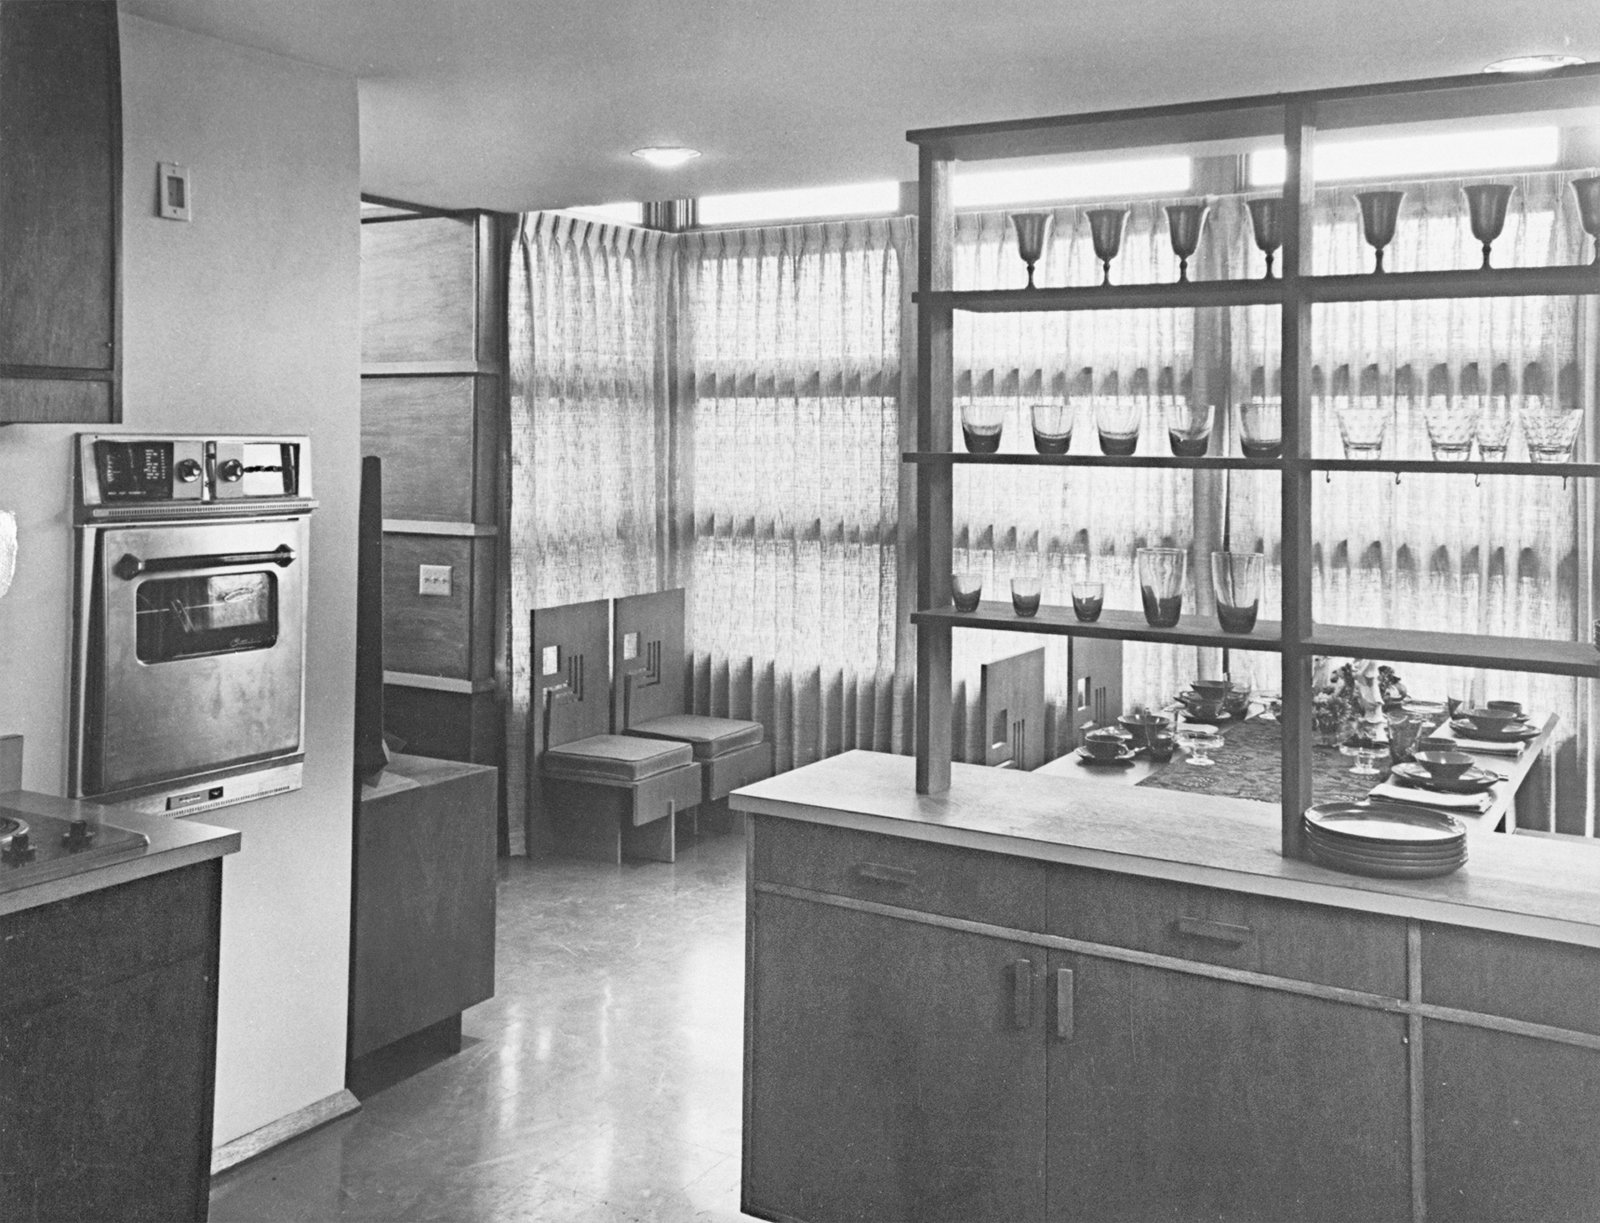 Interior of prefab house showing kitchen looking out into dining room, designed by Frank Lloyd Wright. An Introduction to Kitchen Design - Photo 3 of 7